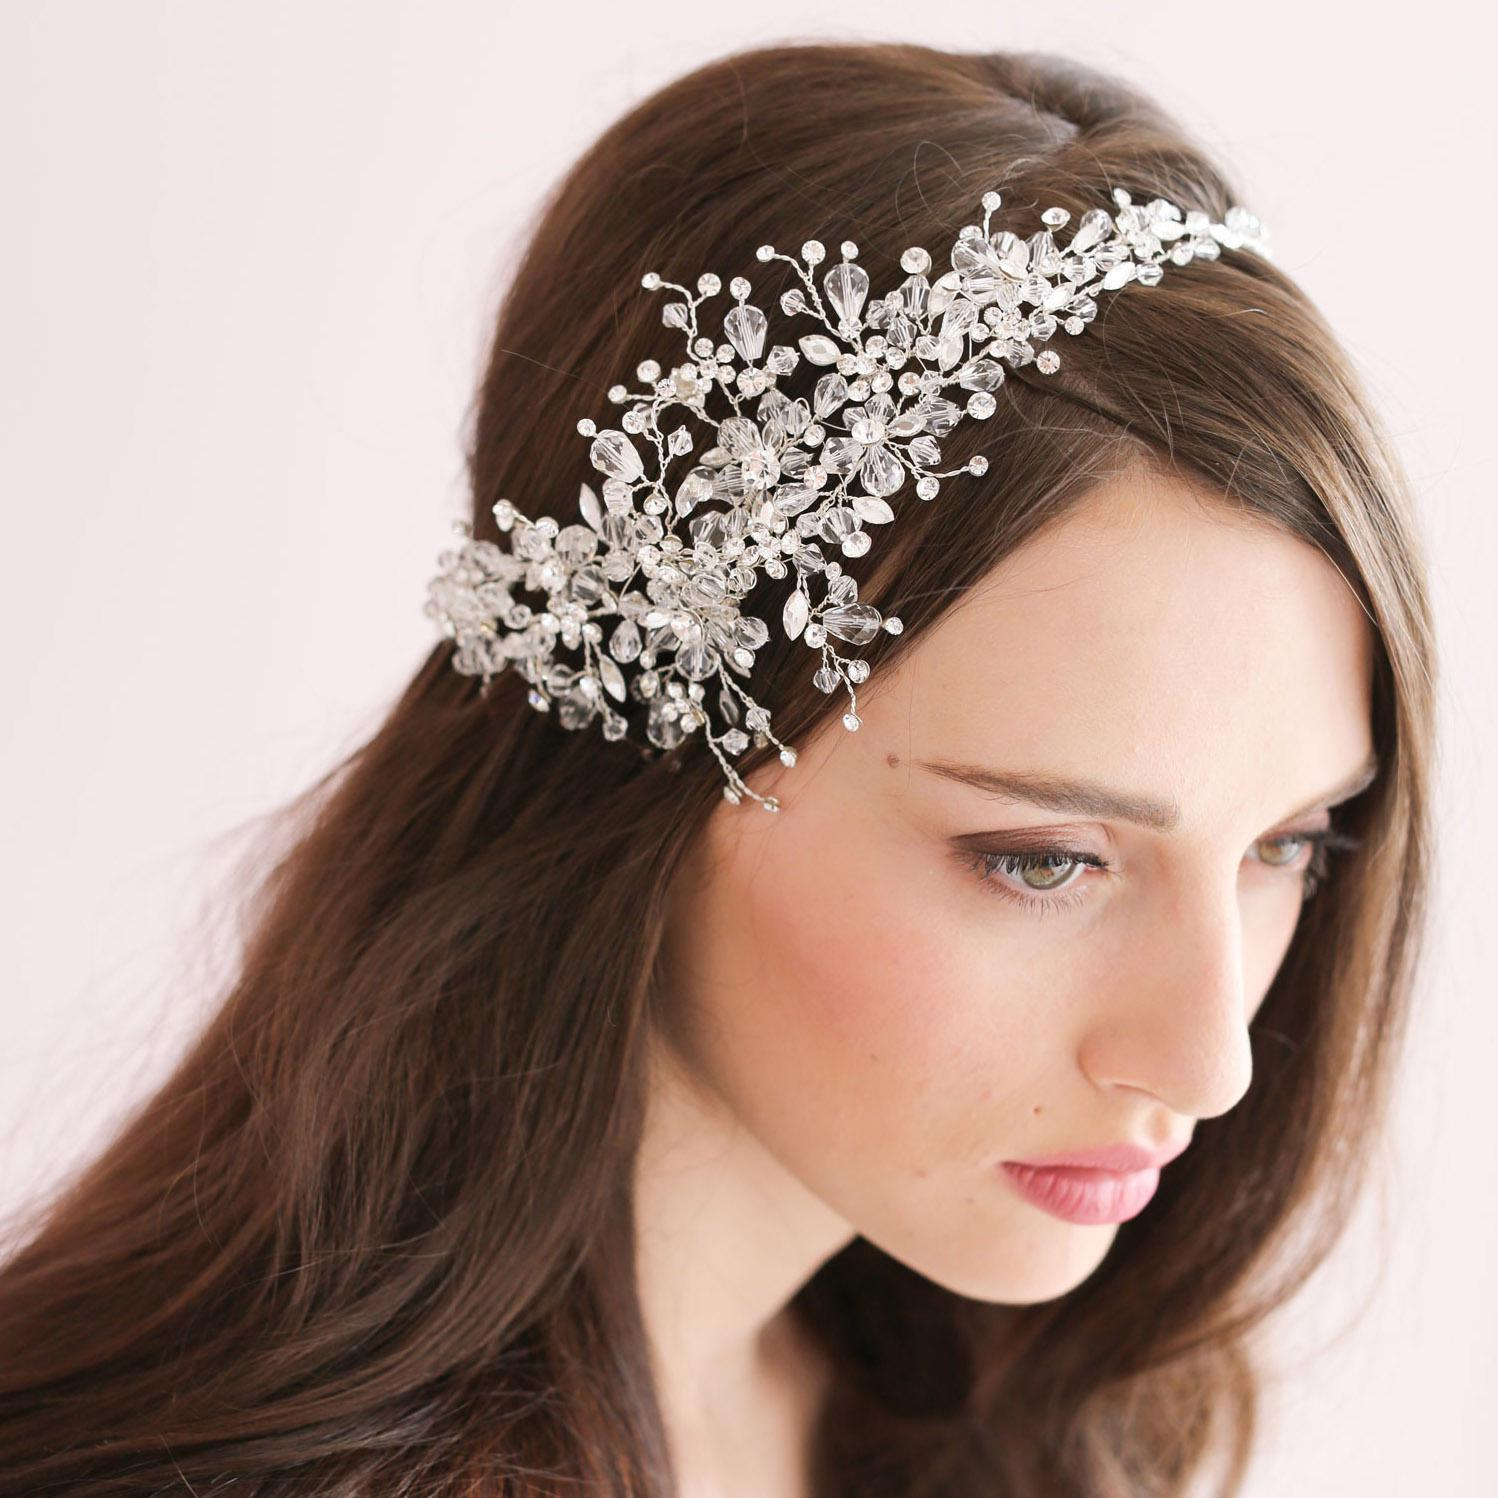 Hair accessories wedding cheap - Handmade Crystal Ice Bridal Sparking Headpiece Beaded Wedding Headpiece Bride Accessories Hair Accessories Bridal Headband Headpieces Bridal Tiaras